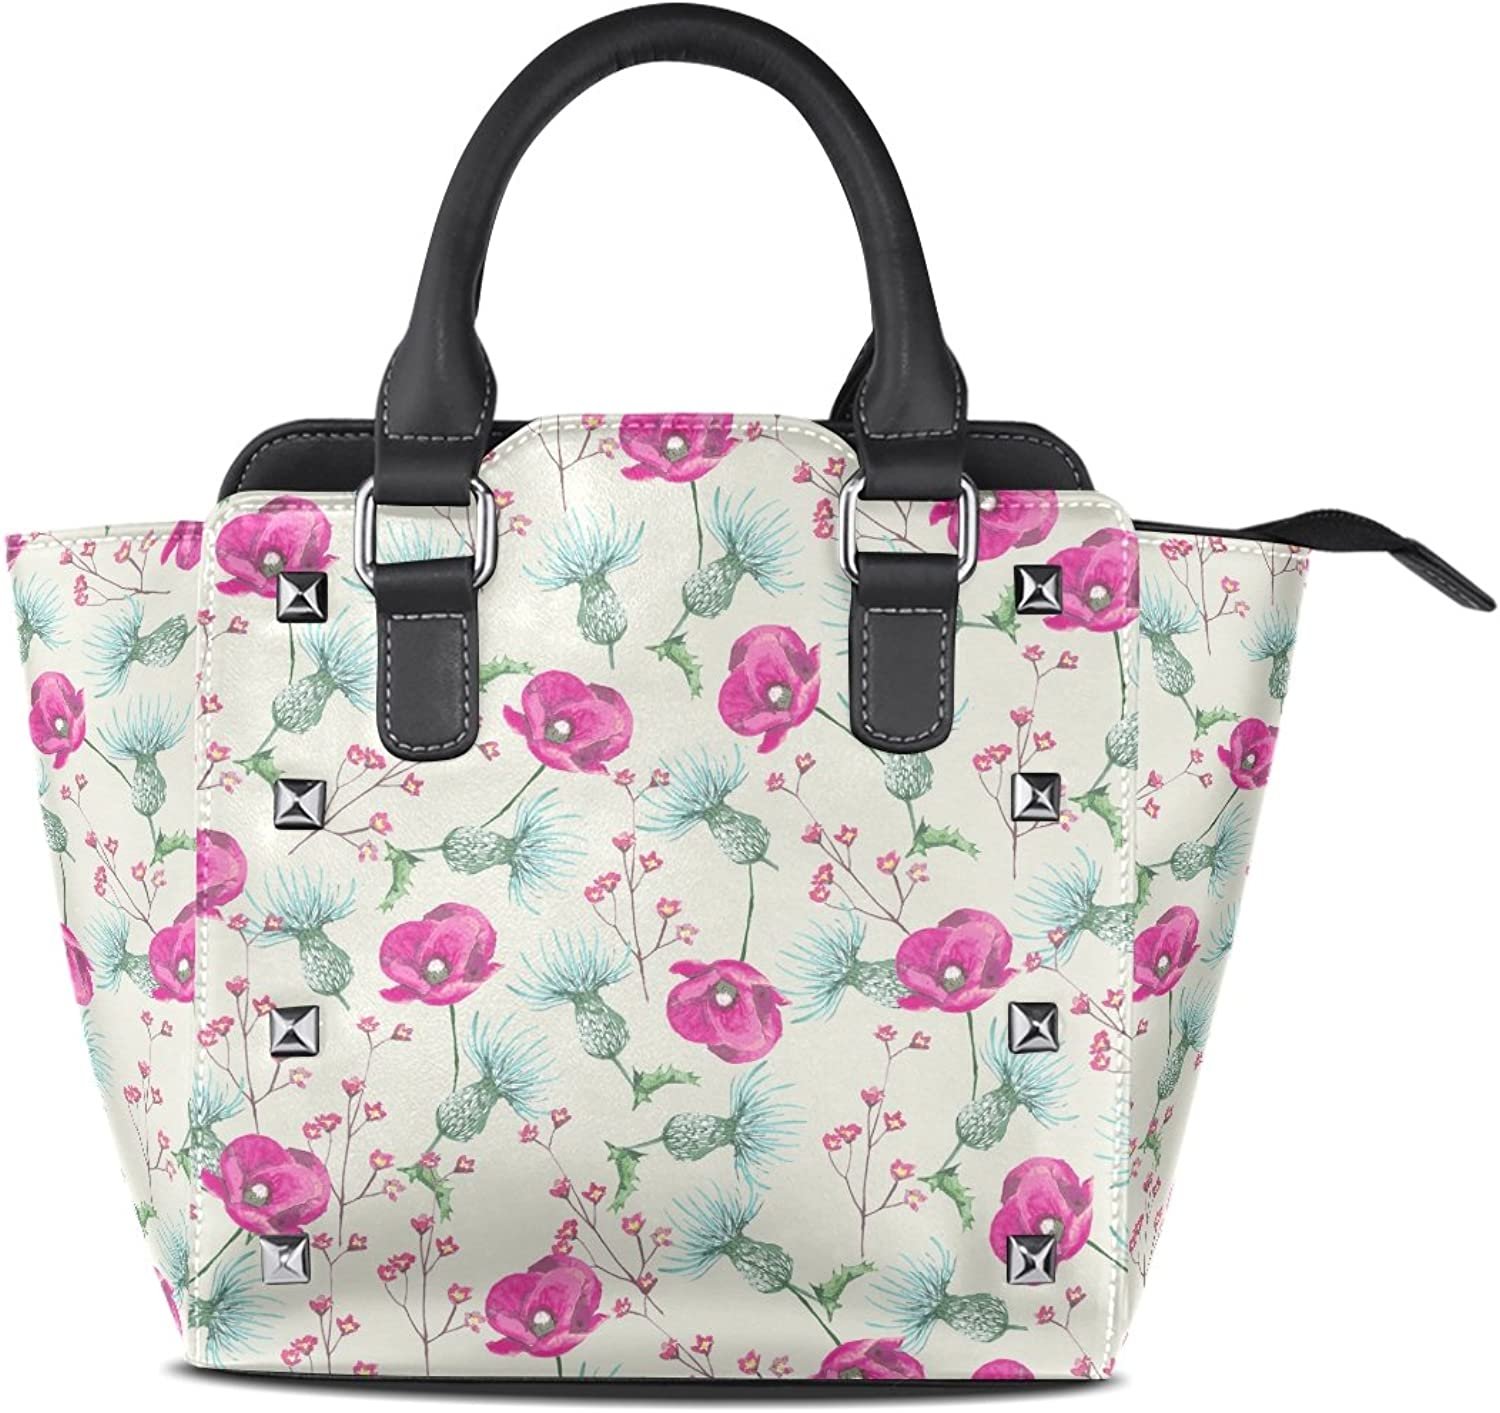 Sunlome Cute Floral Print Women's Leather Tote Shoulder Bags Handbags